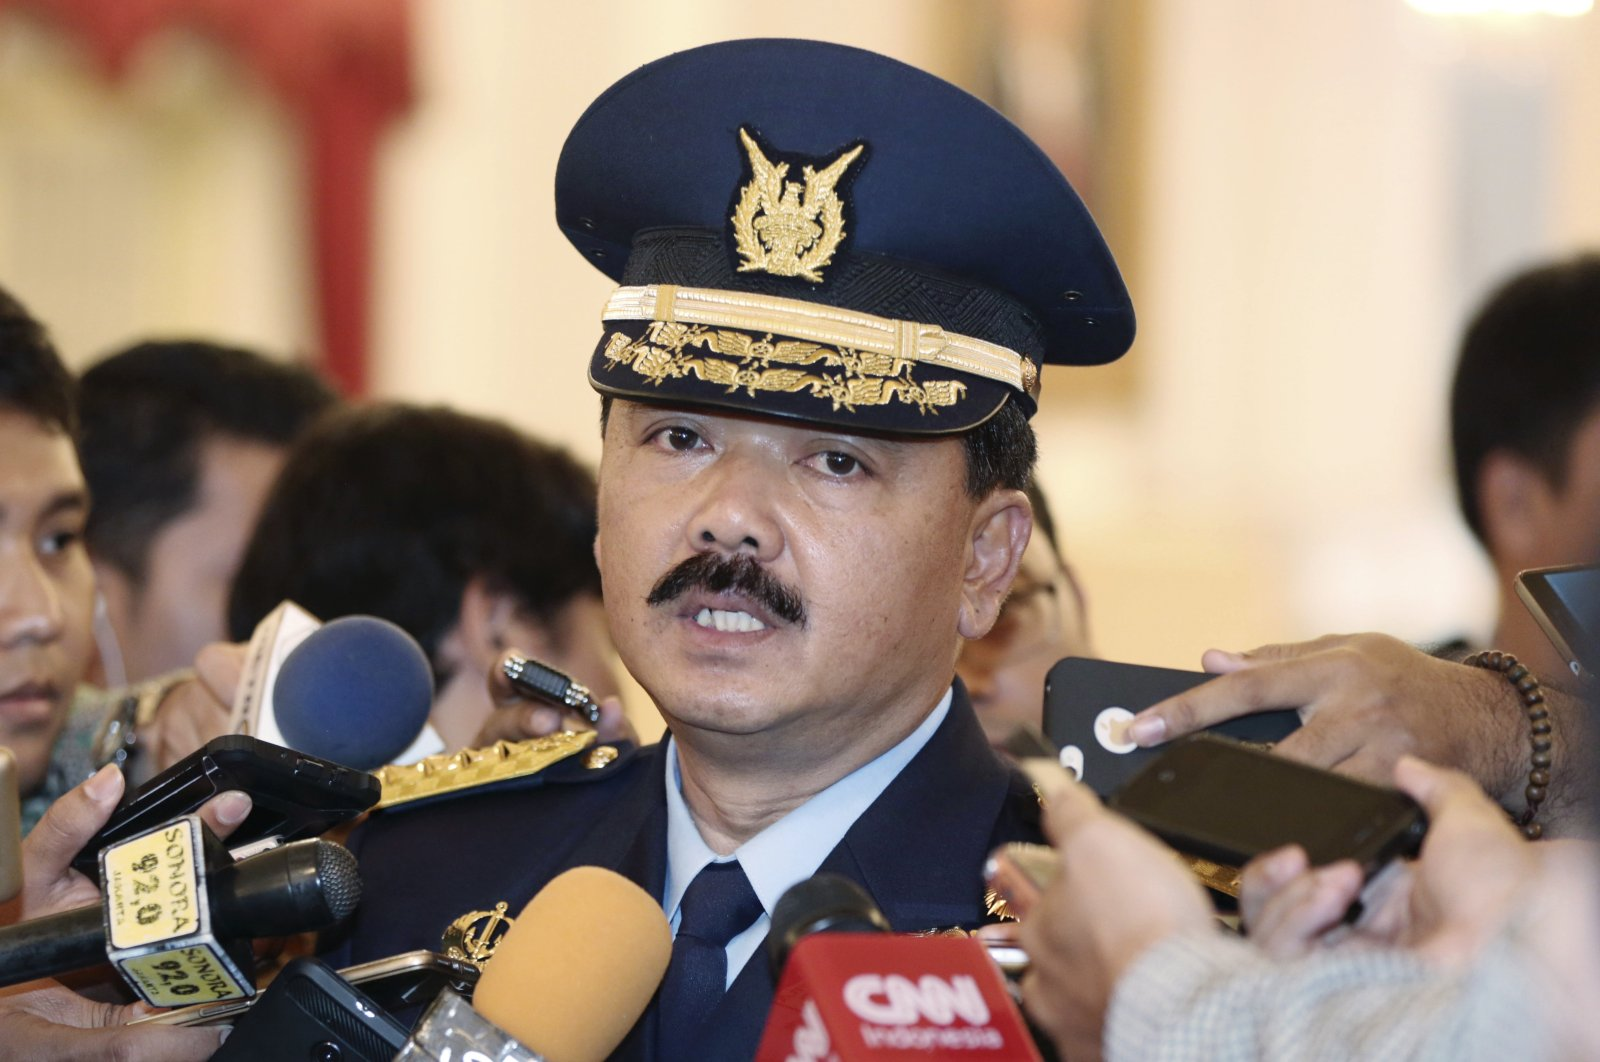 Indonesia's then Air Force Chief of Staff Air Marshall Hadi Tjahjanto talks to journalists after his swearing-in ceremony at the presidential palace in Jakarta, Indonesia, Jan. 18, 2017. (AP Photo)